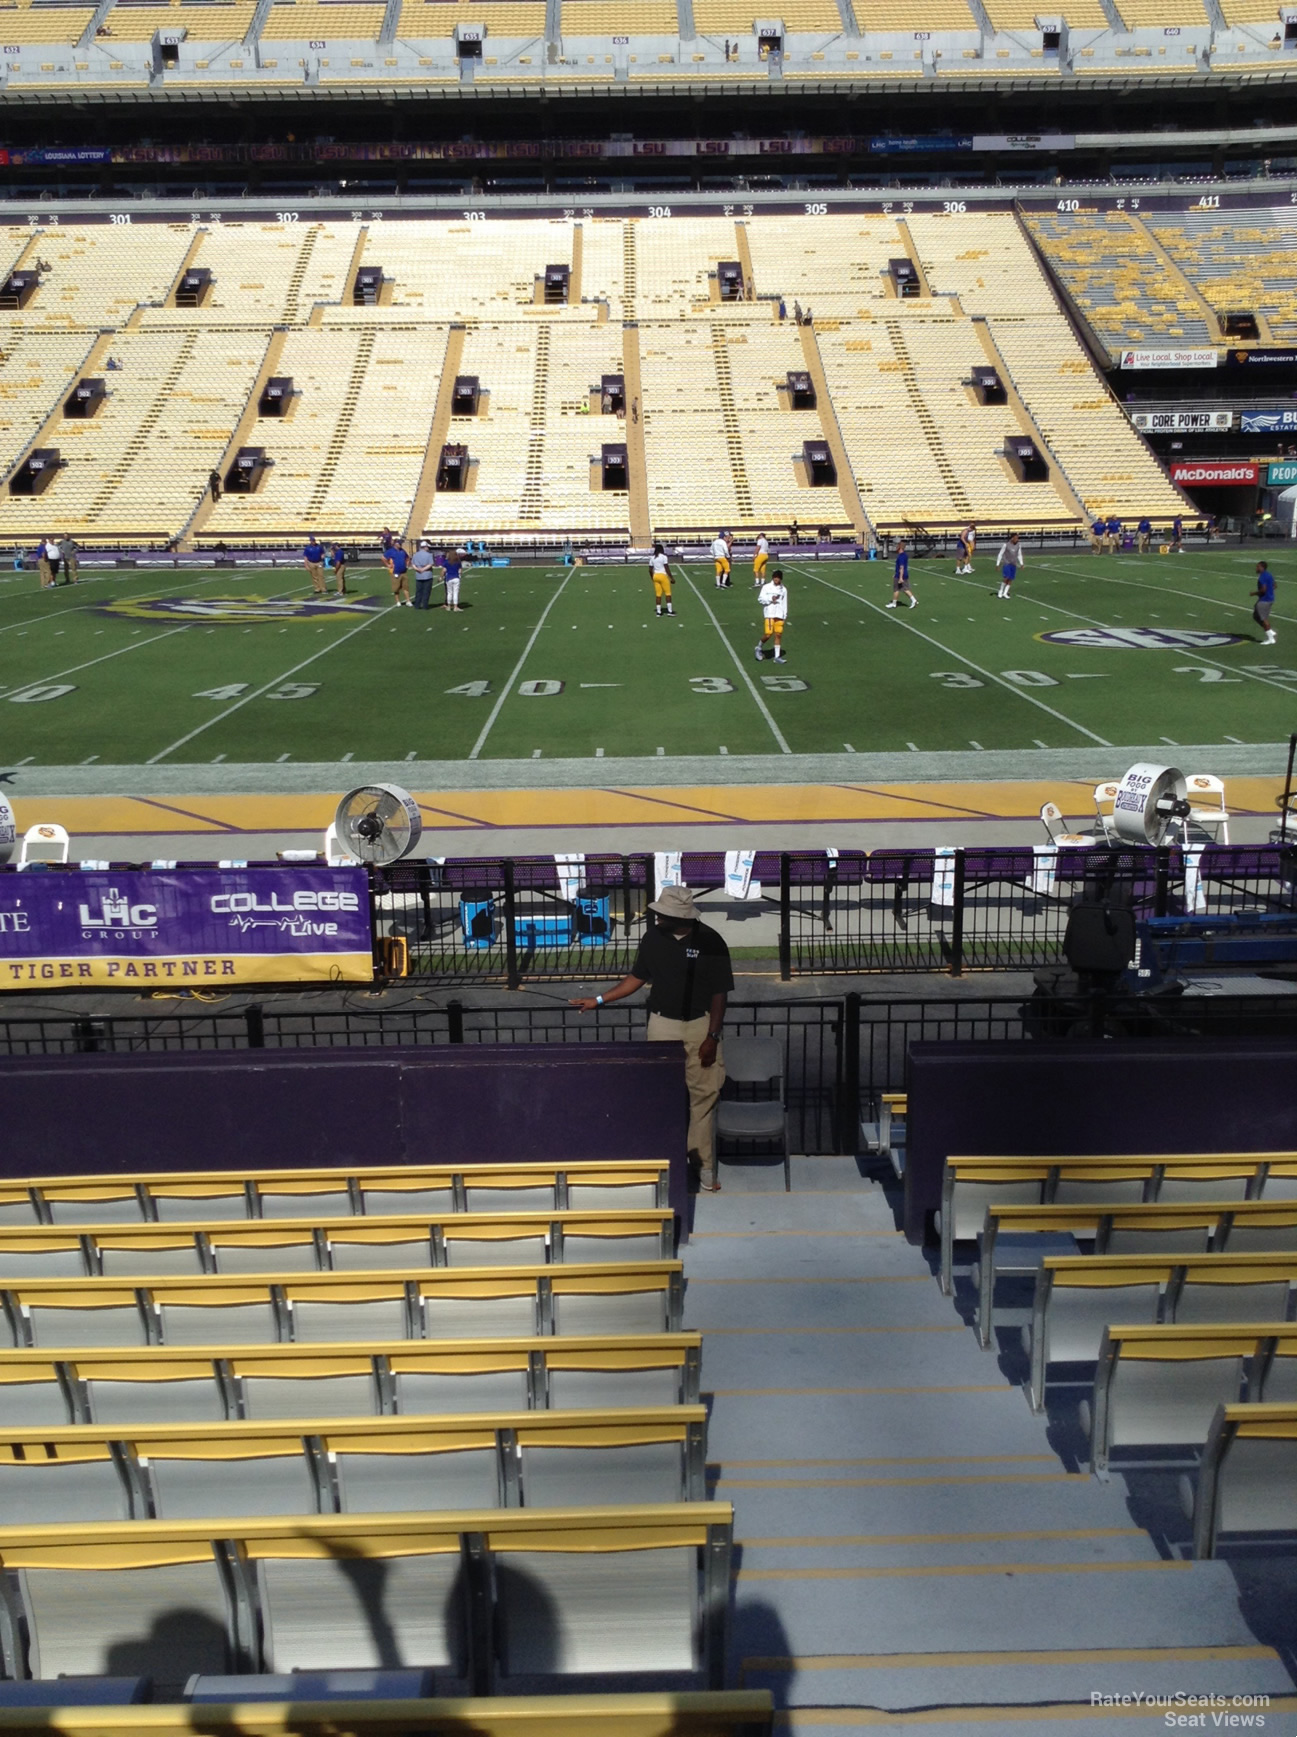 Lower Level Sideline  Tiger Stadium Football Seating